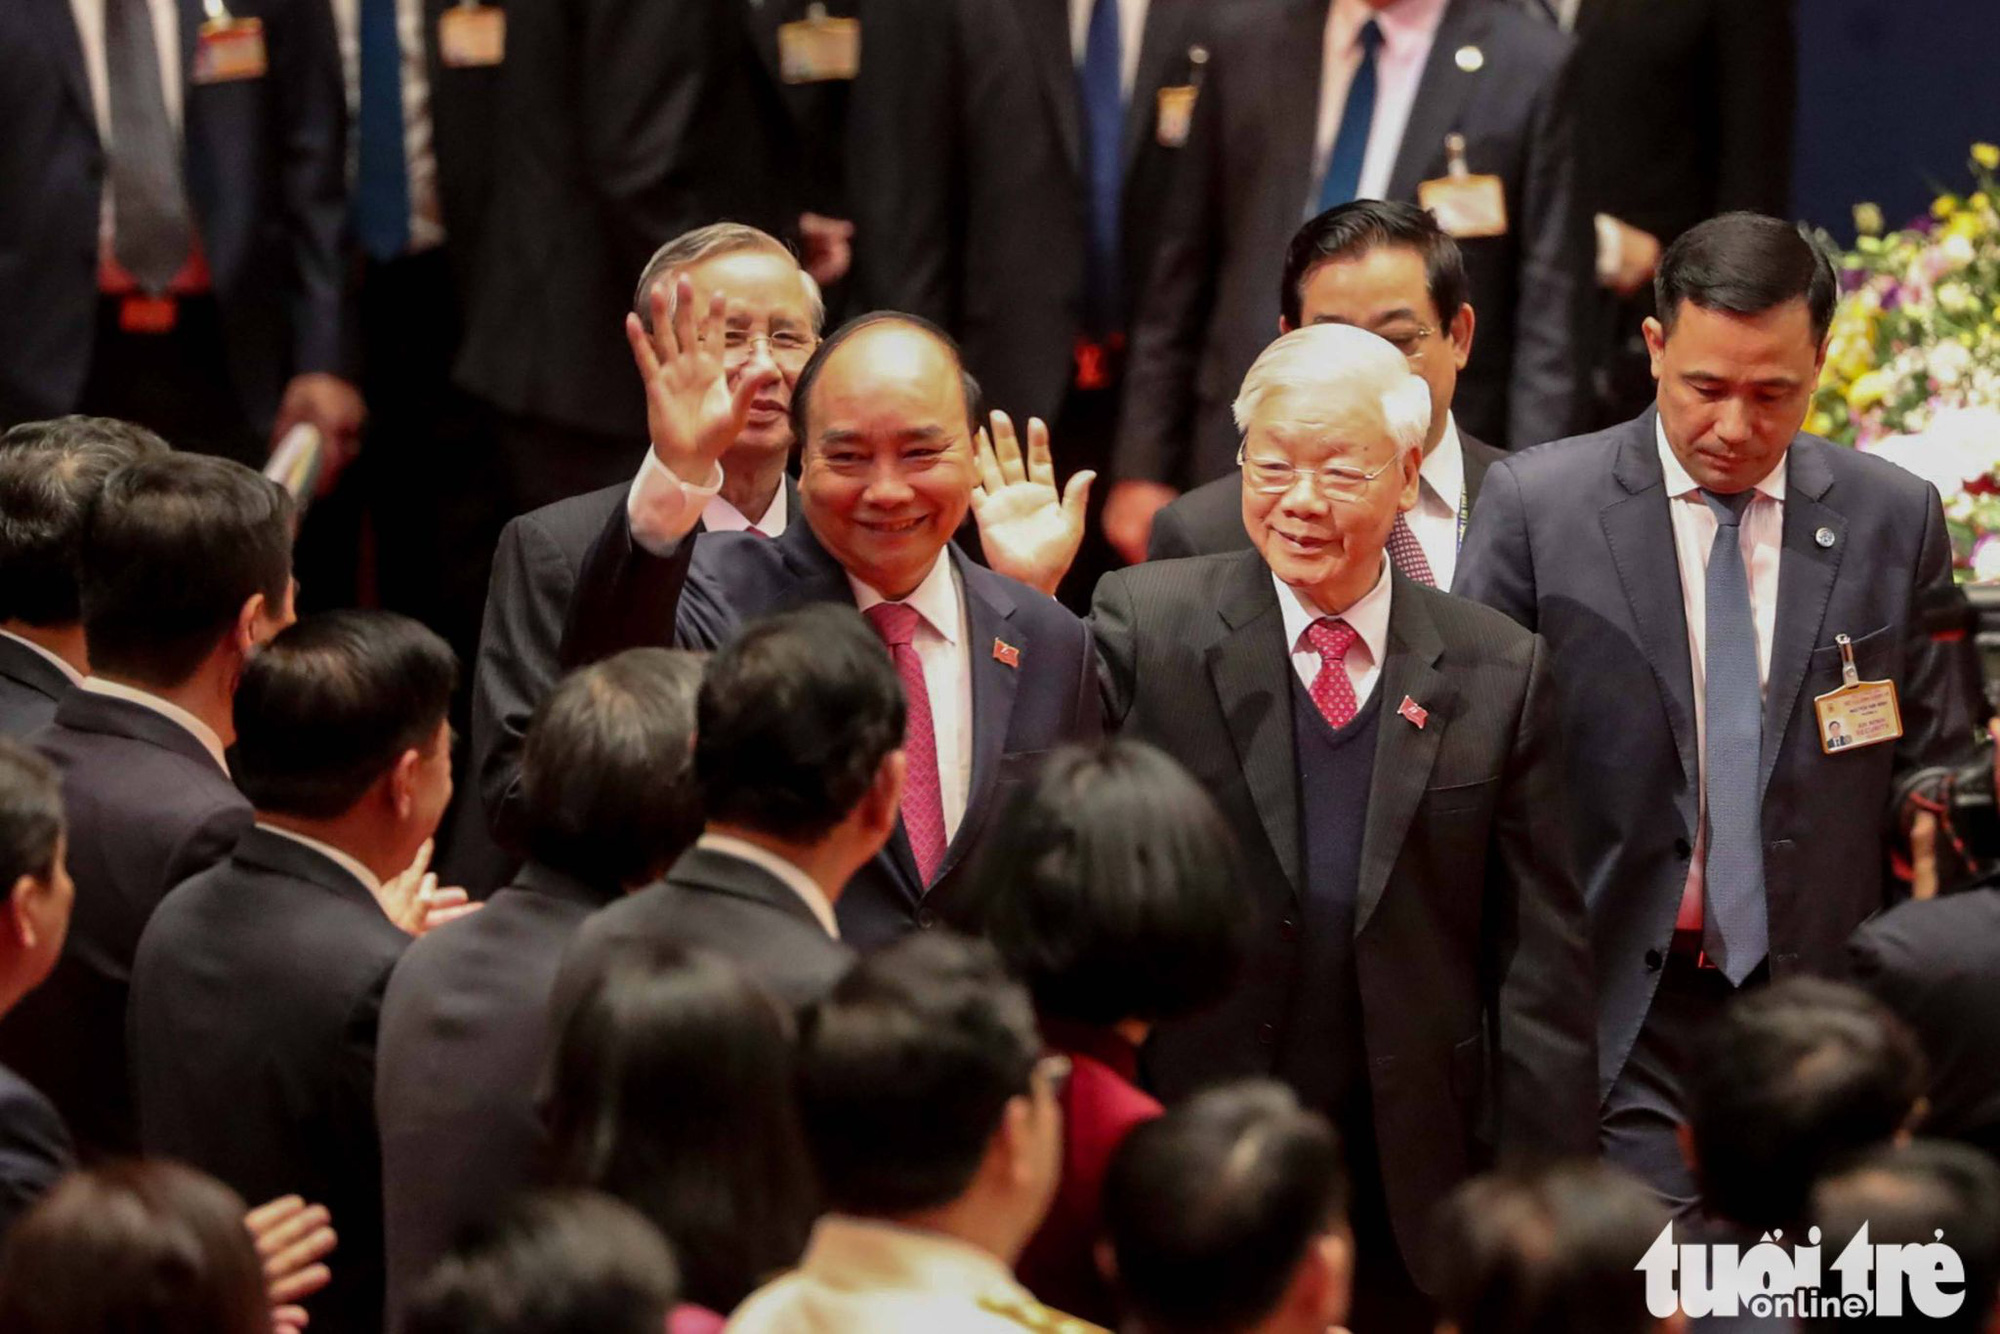 Vietnamese Party General Secretary and State President Nguyen Phu Trong (R) and Prime Minister Nguyen Xuan Phuc arrive at the preparatory session in Hanoi, January 25, 2021. Photo: Minh Linh / Tuoi Tre